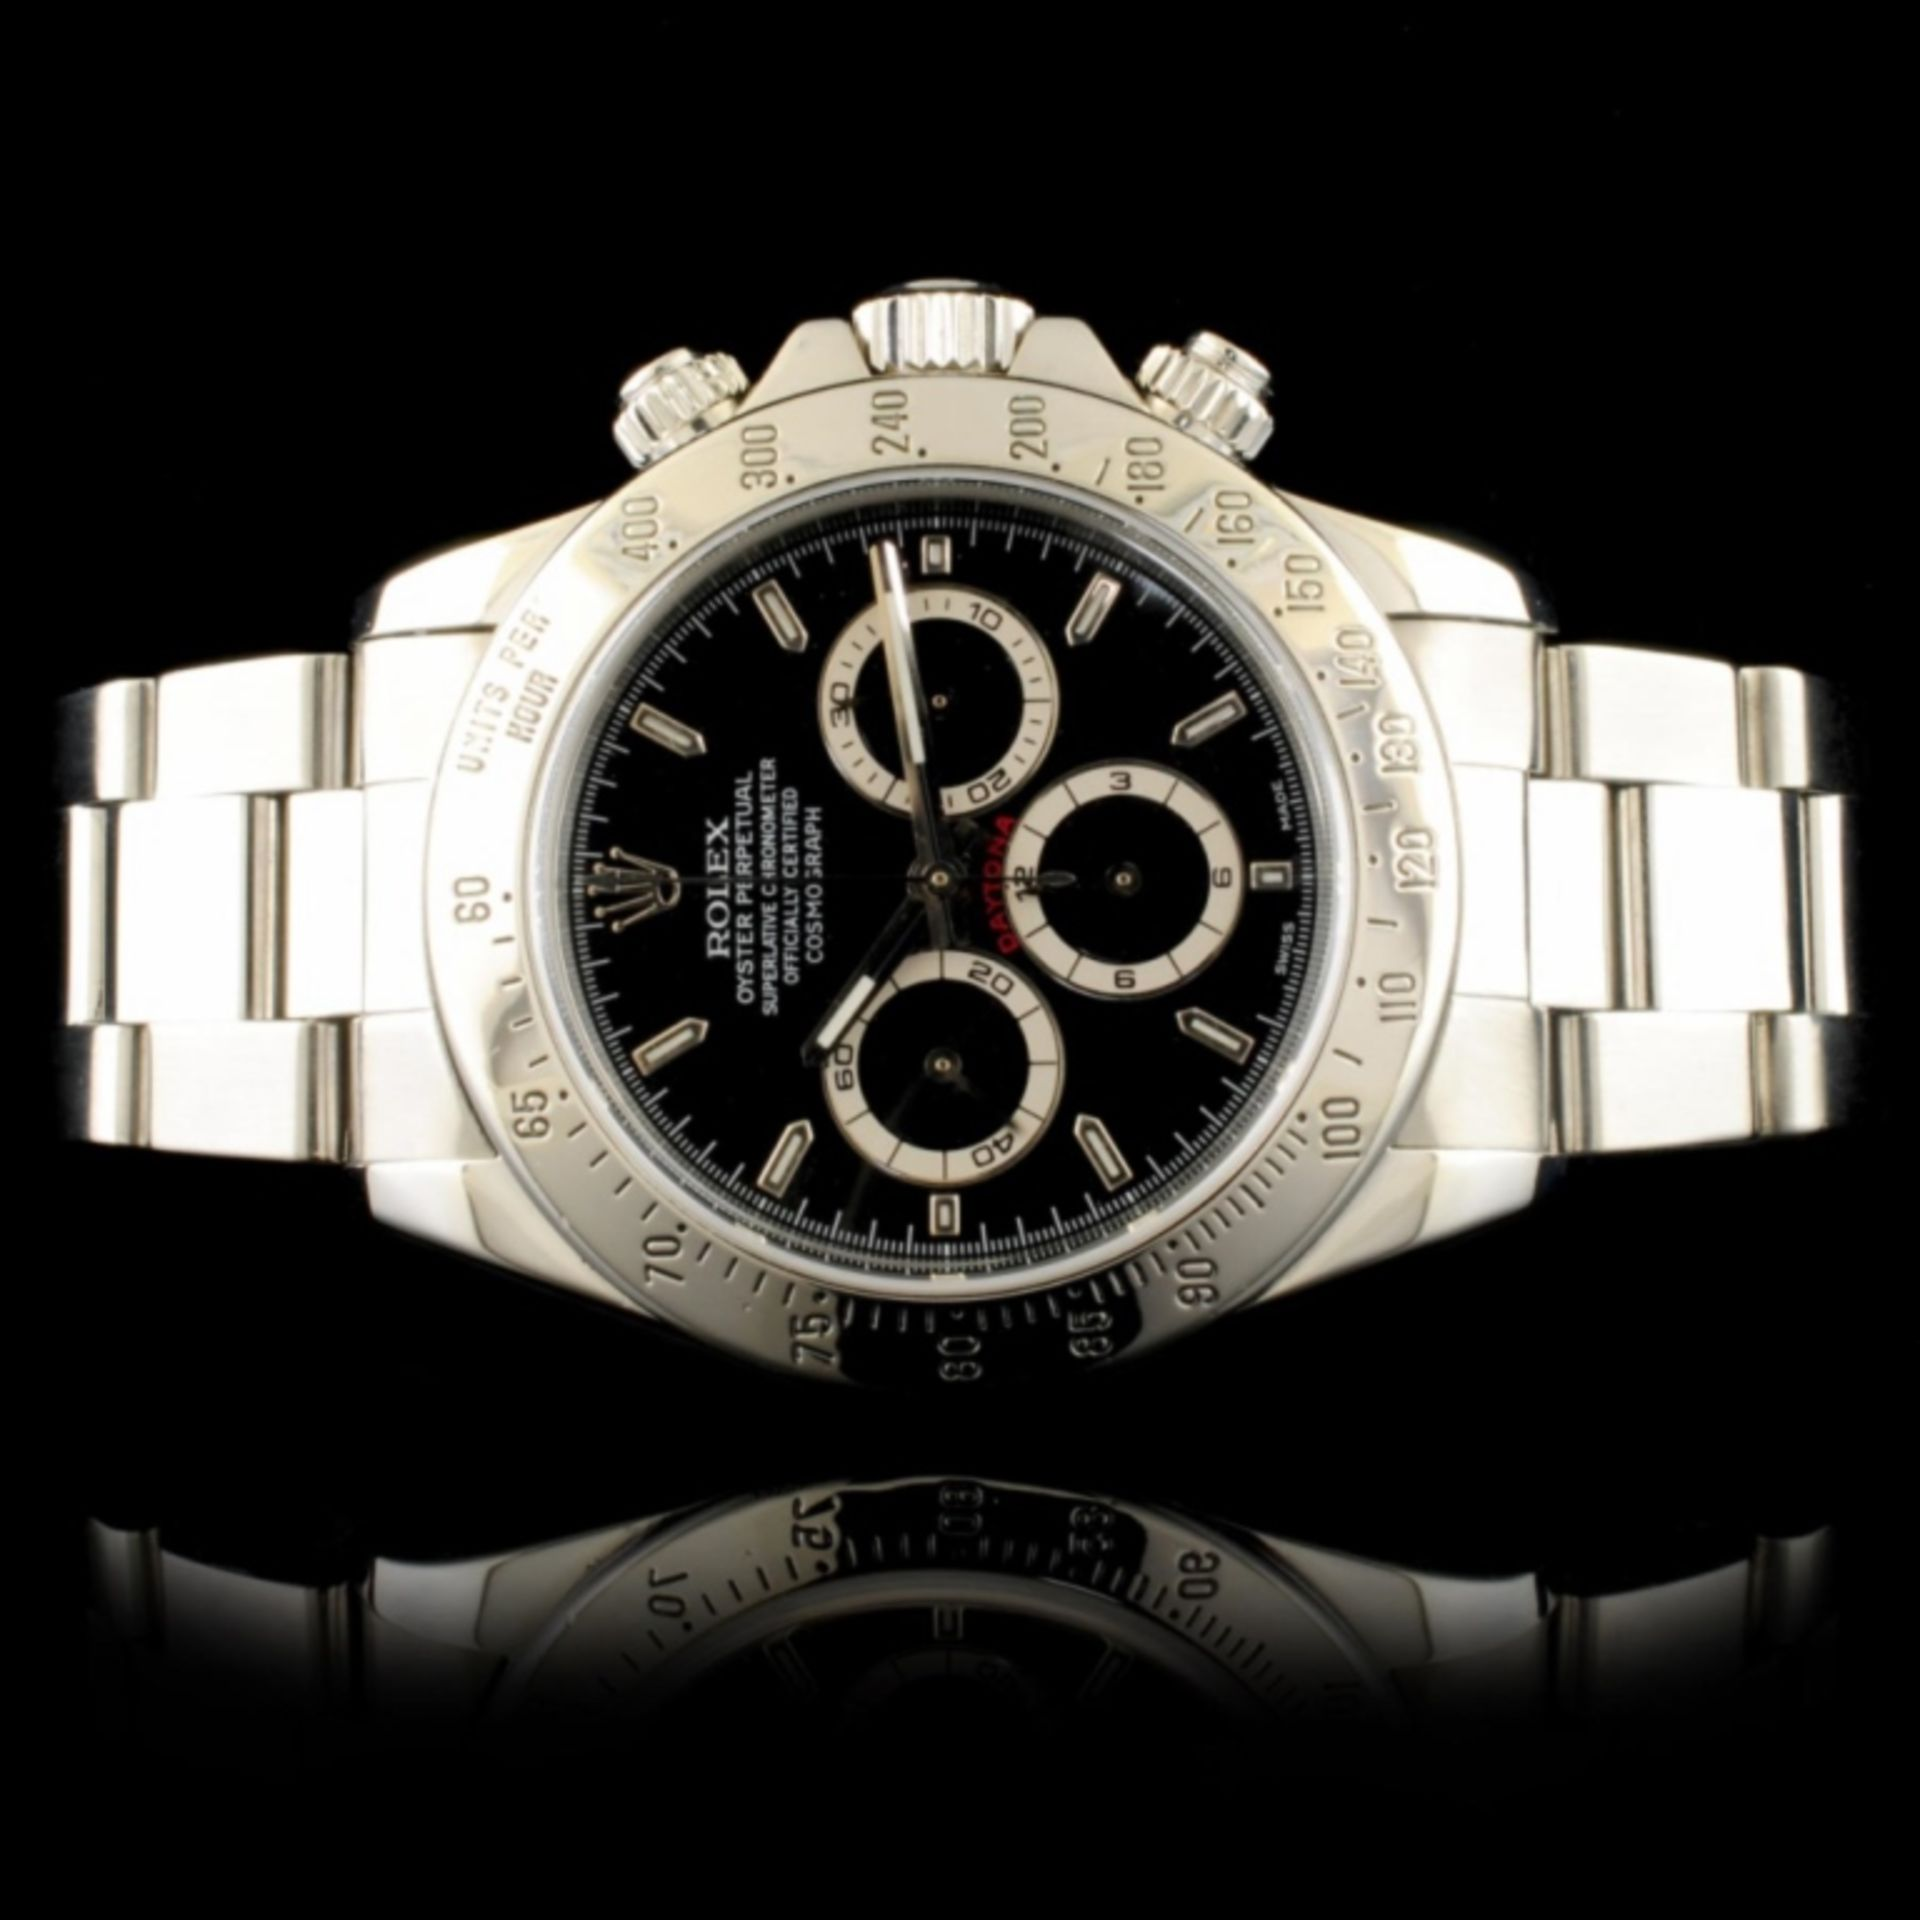 Rolex DAYTONA Cosmograph 16520 40MM Wristwatch